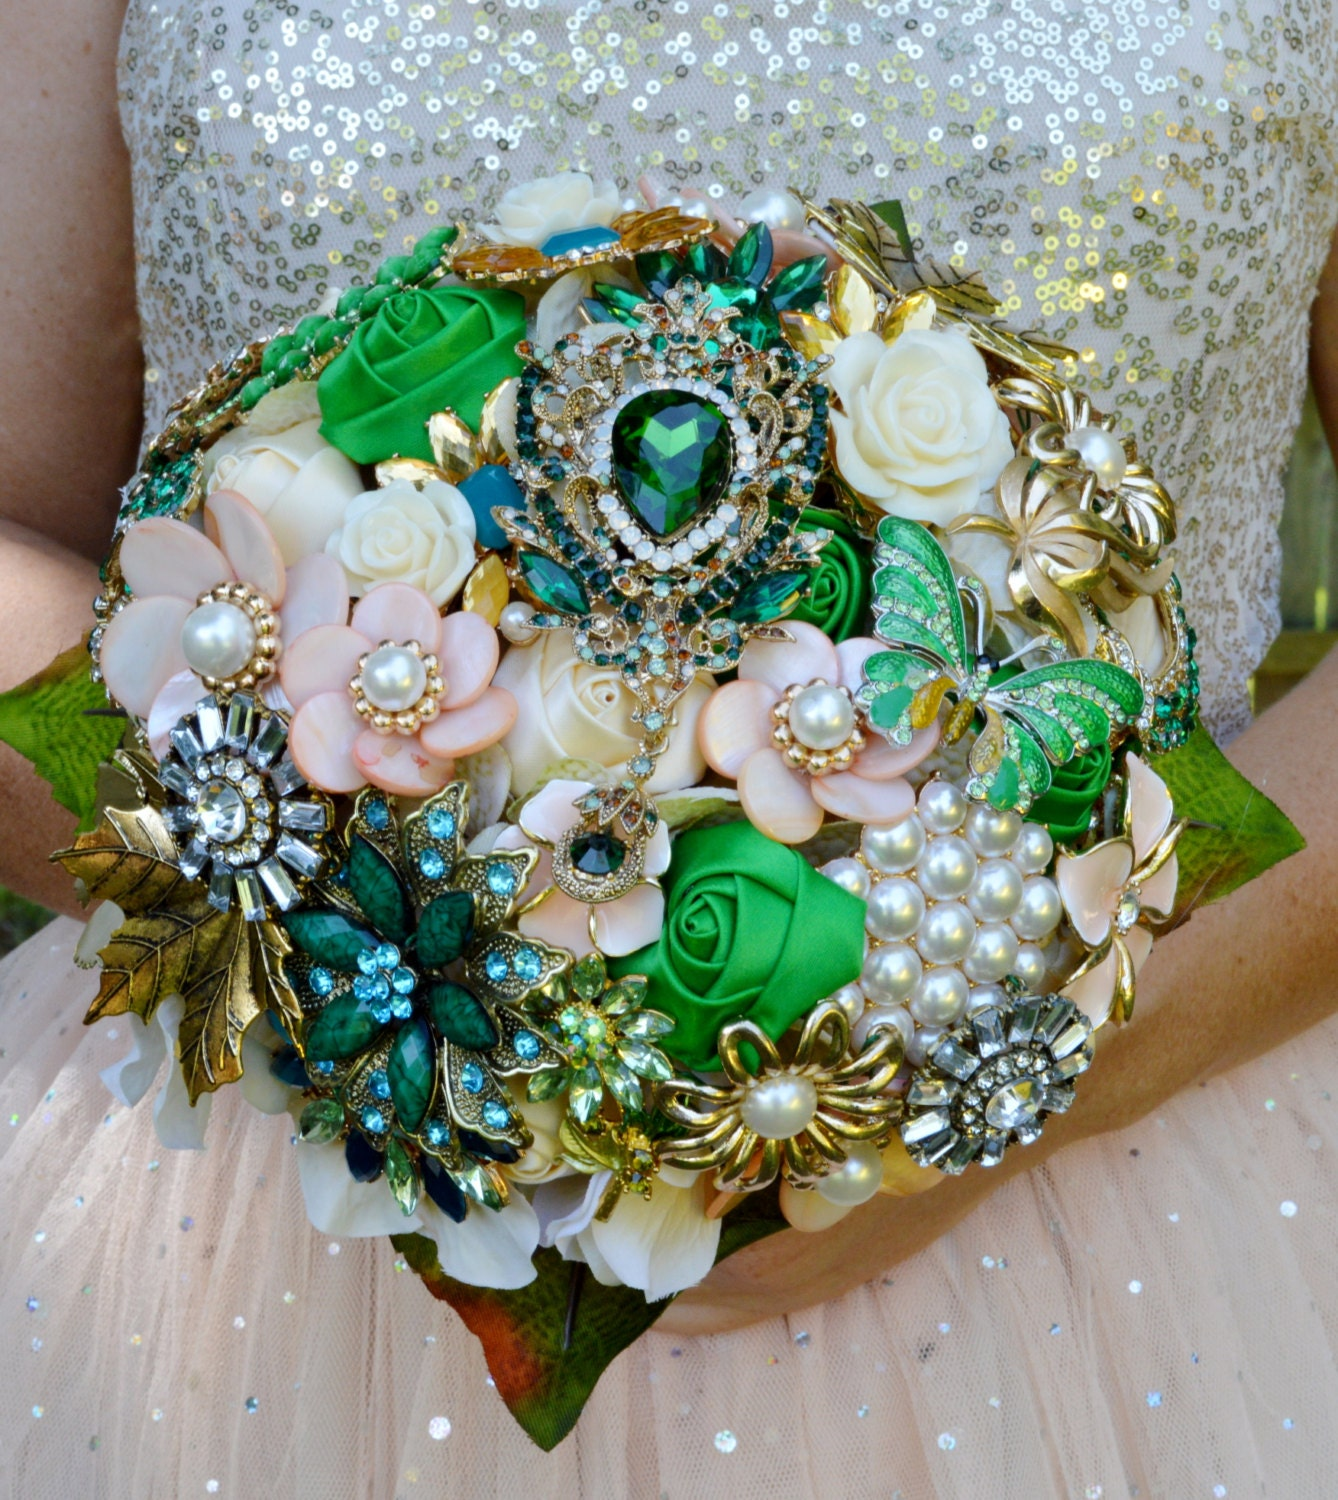 Wedding Flowers Bridal Bouquet Prices: SALE! FULL PRICE Ready To Ship 2 Bouquets Bridal Brooch